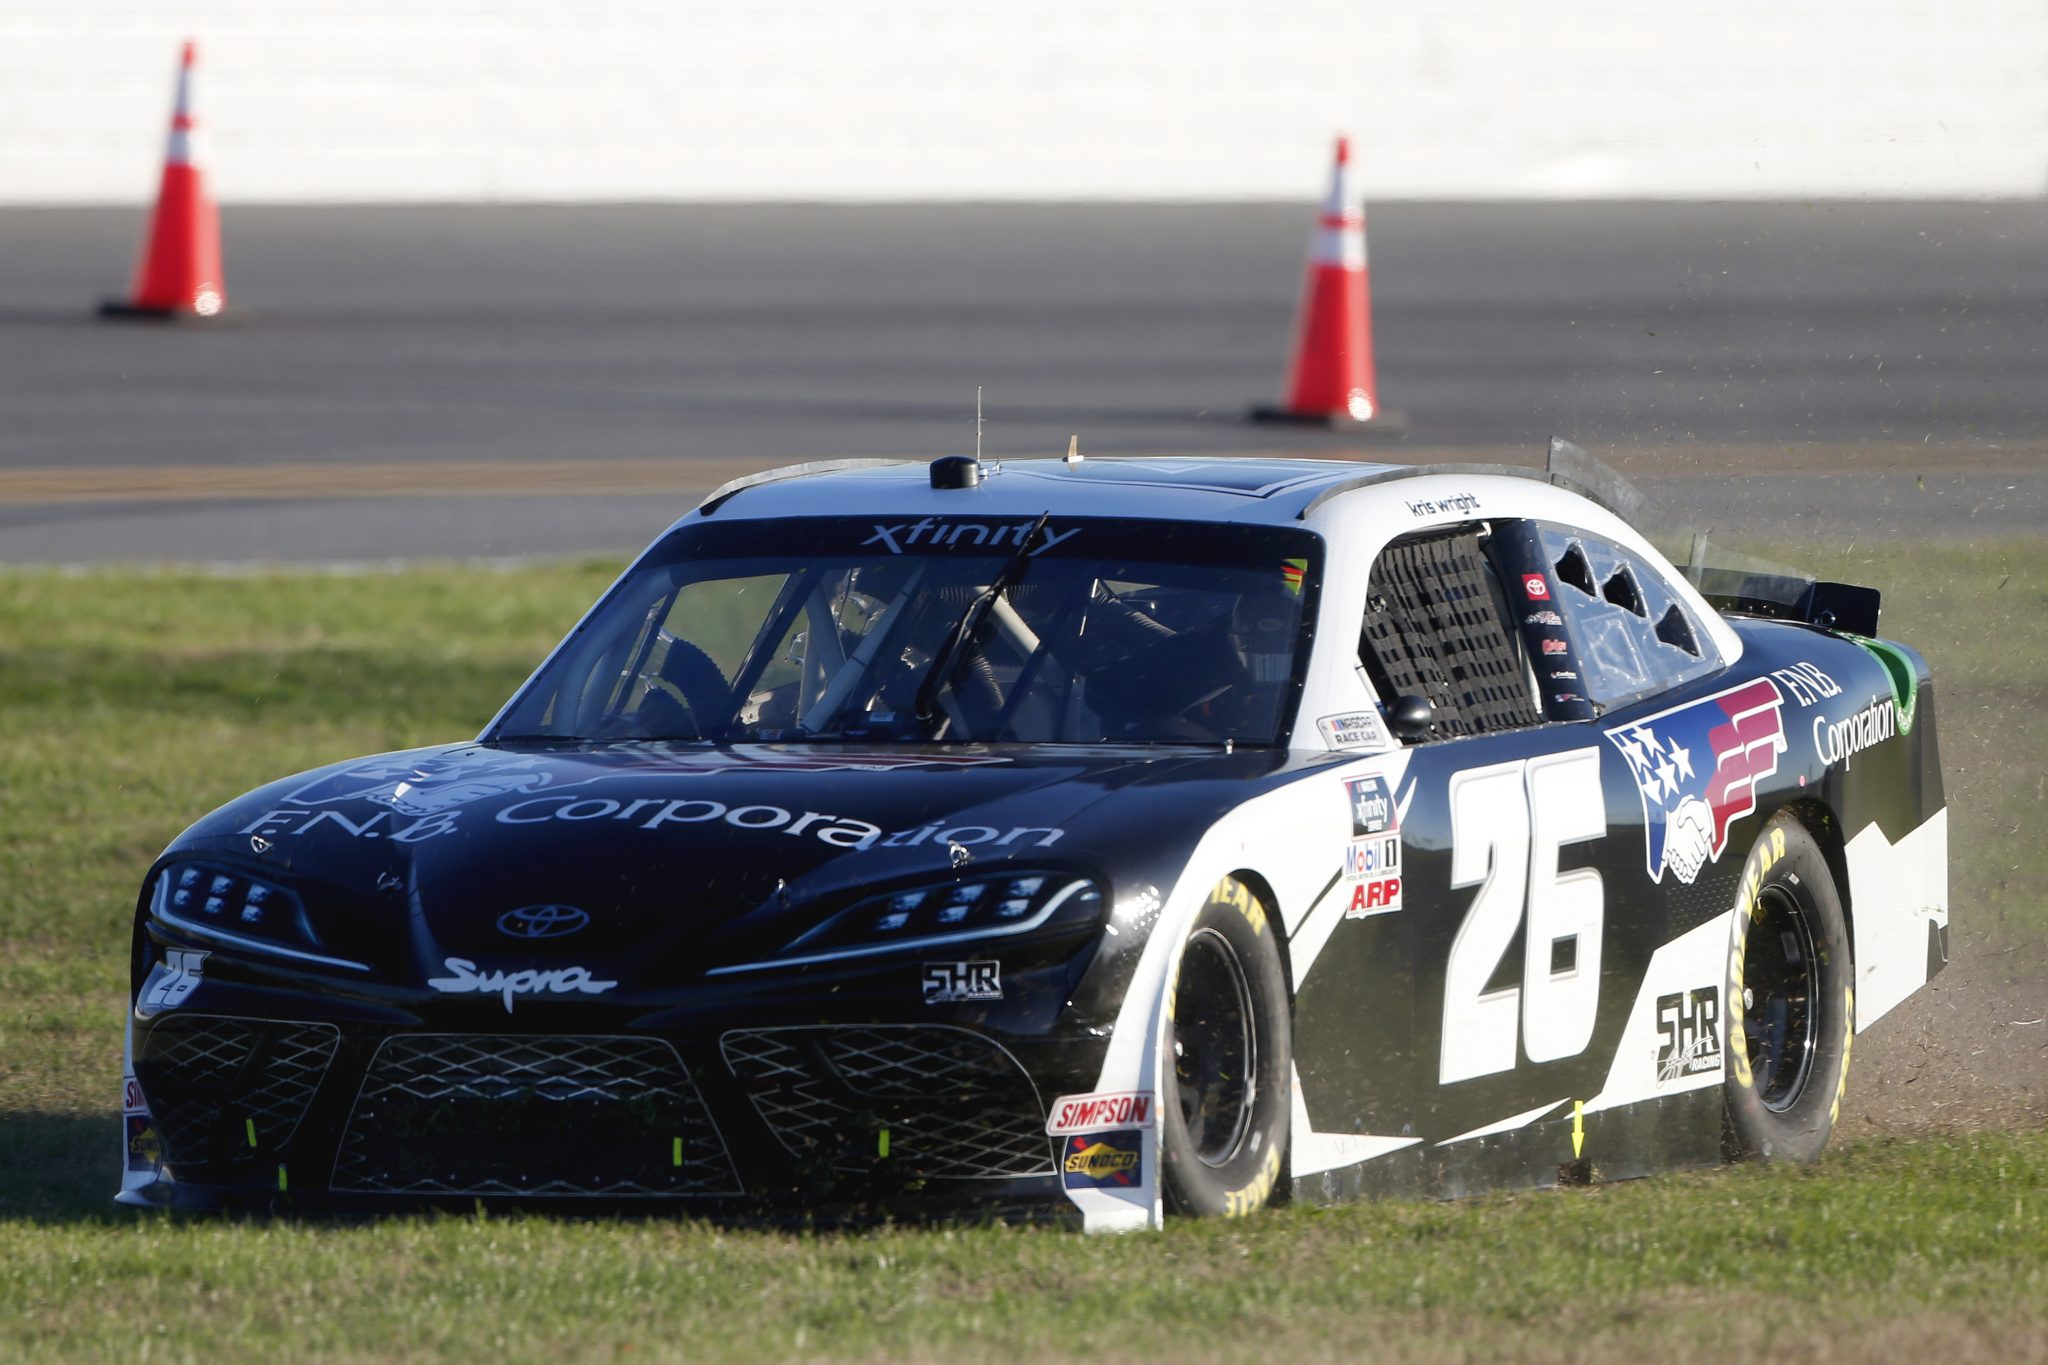 DAYTONA BEACH, FLORIDA - FEBRUARY 20: Kris Wright, driver of the #26 F.N.B. Corporation Toyota, spins into the grass during the NASCAR Xfinity Super Start Batteries 188 At Daytona Presented by O'Reilly at Daytona International Speedway on February 20, 2021 in Daytona Beach, Florida. (Photo by Brian Lawdermilk/Getty Images) | Getty Images